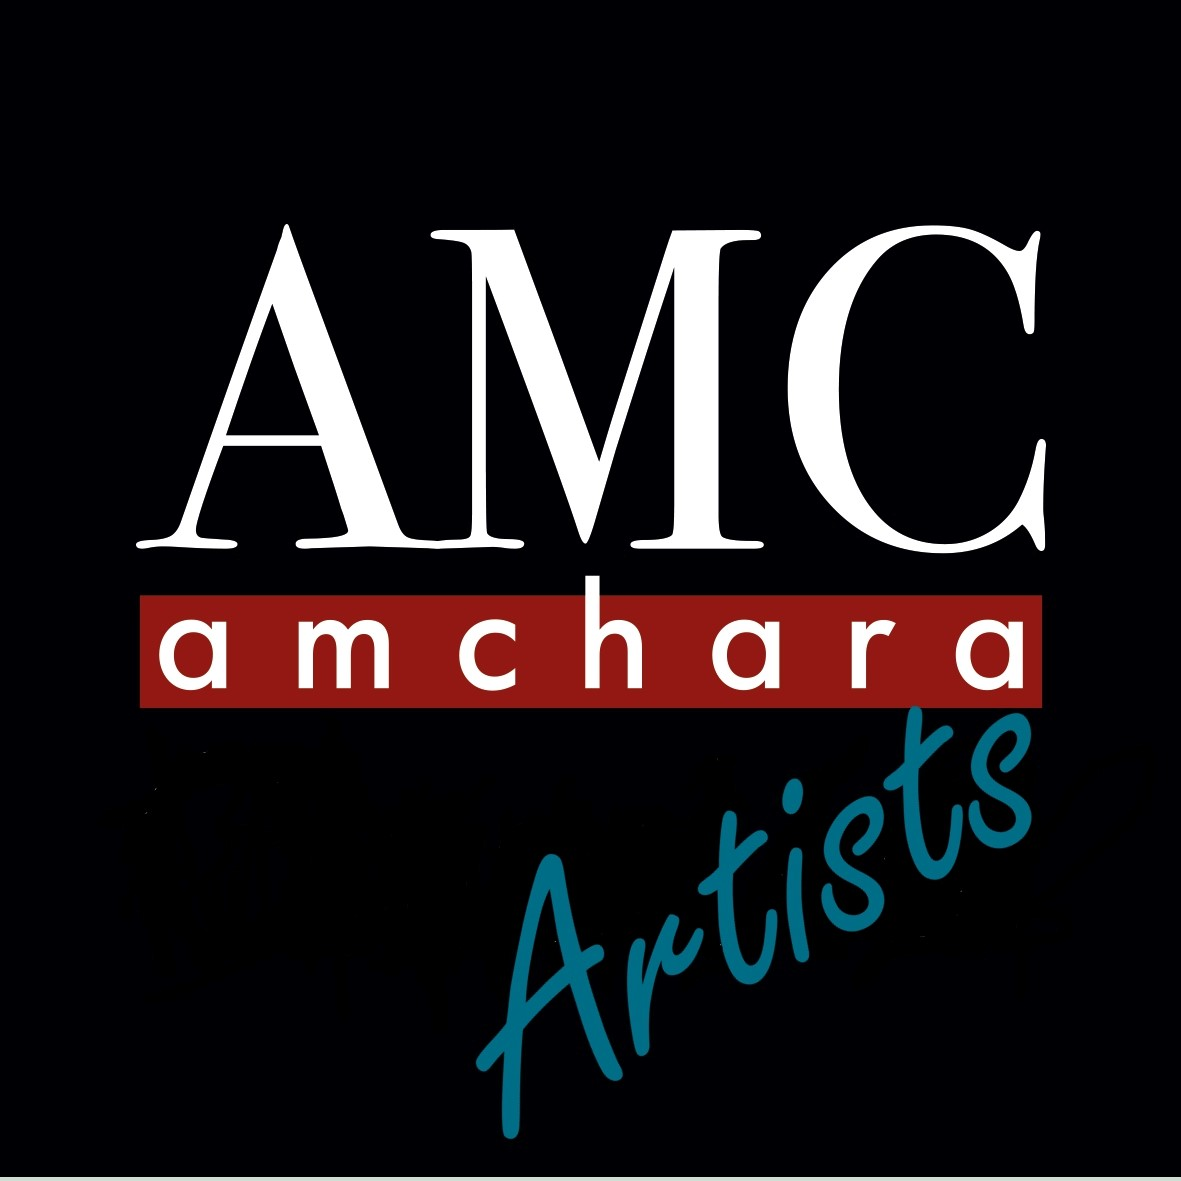 amc_amchara_artisit_logo new